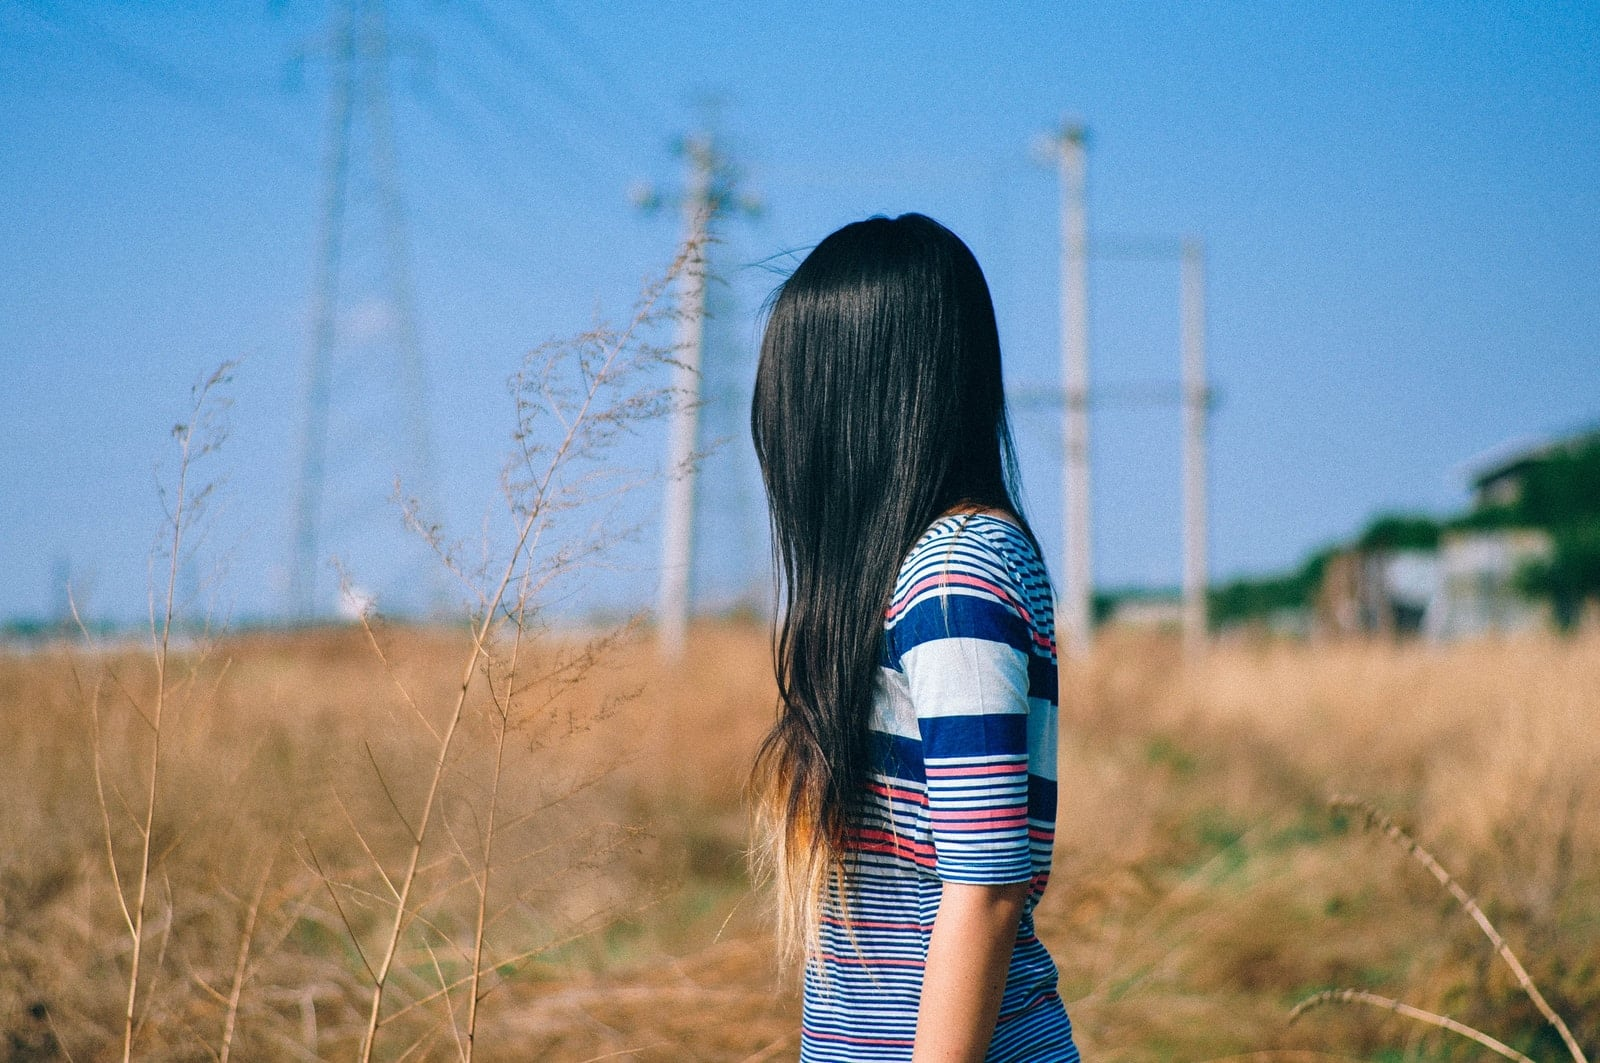 selective focus photography of woman standing near outdoor during daytime